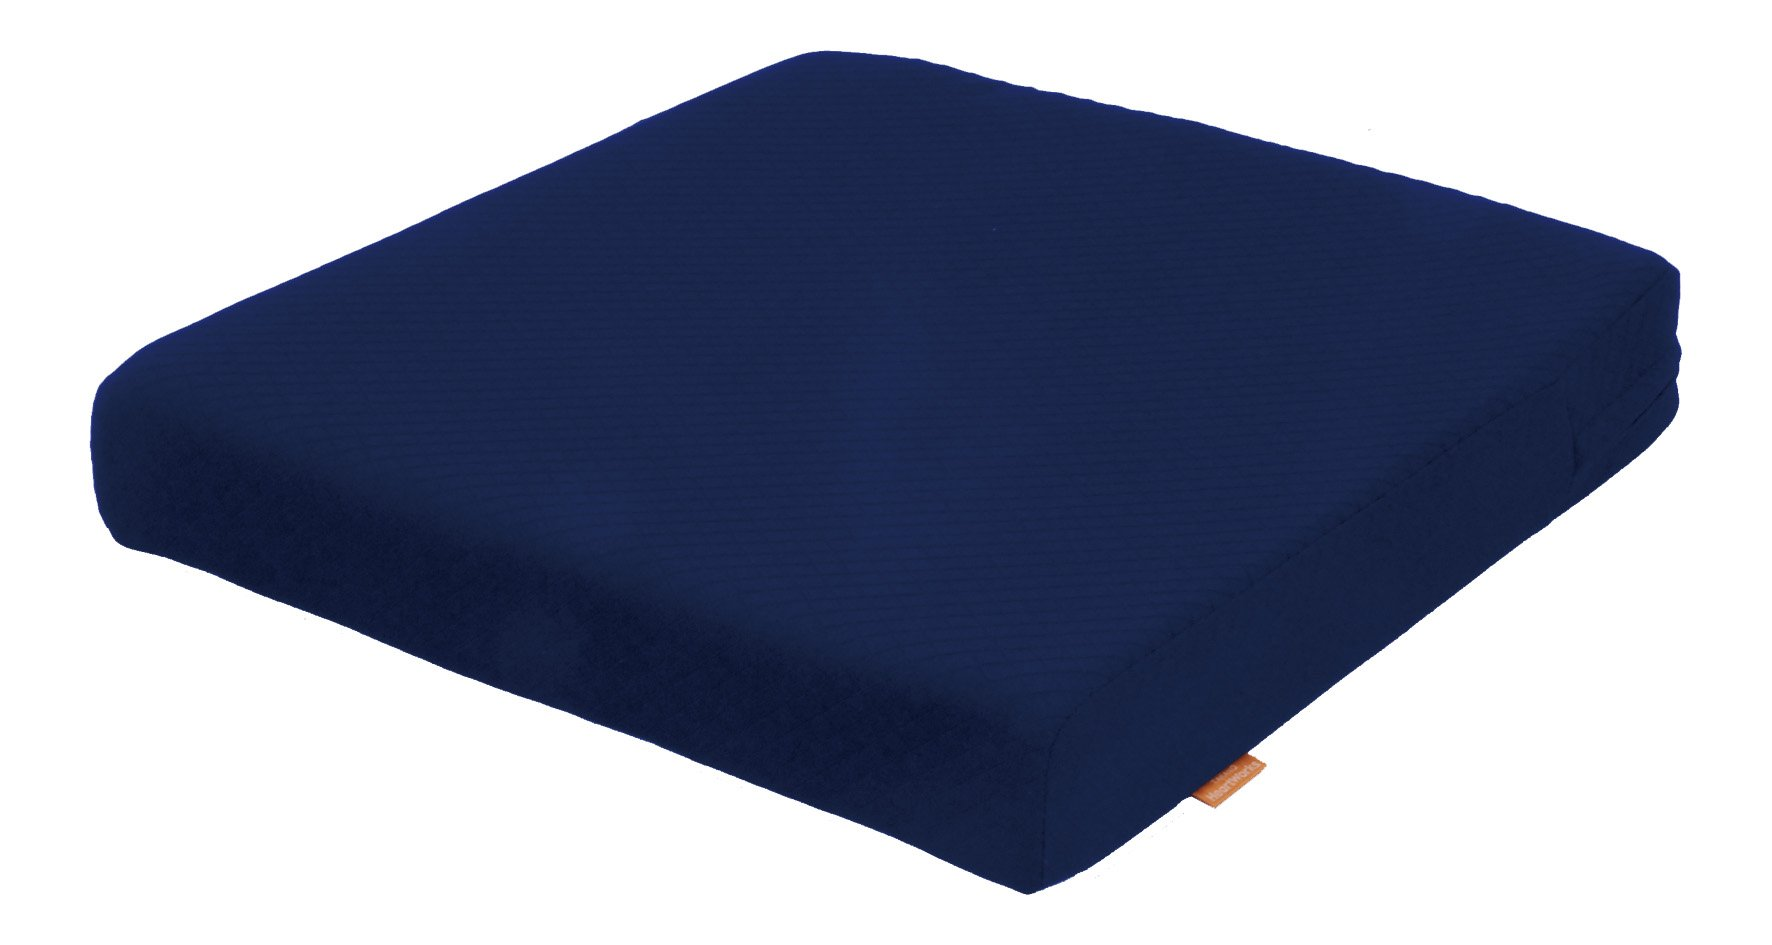 Japan Health and Beauty - Cushion TC-R064 Blue for Takano wheelchair *AF27*